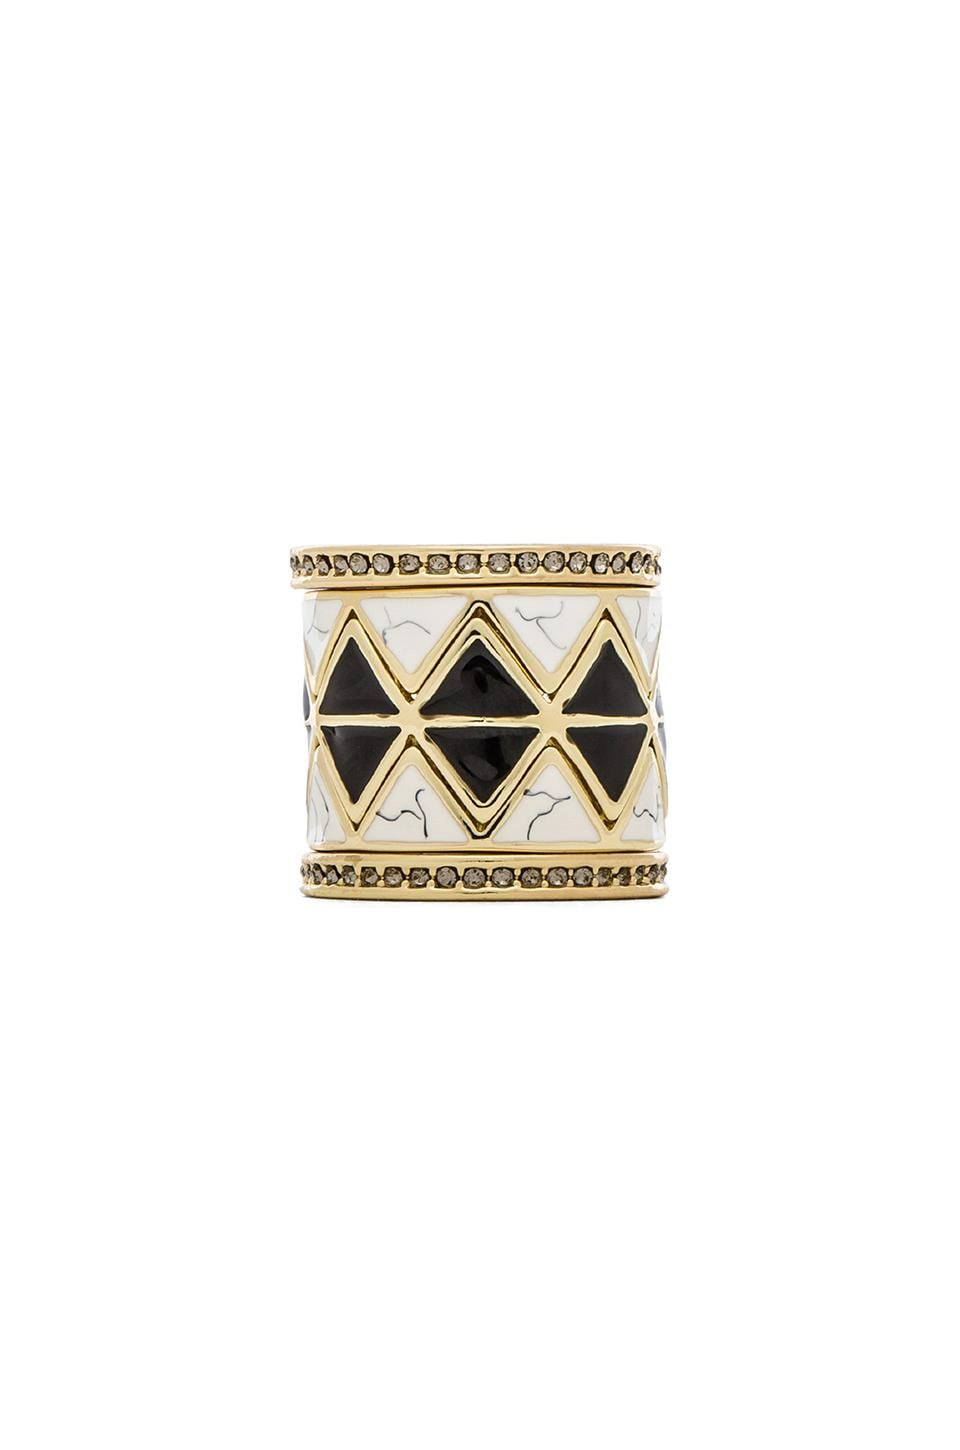 House of Harlow 1960 House of Harlow Reflector Ring Stack in Black & Howlite